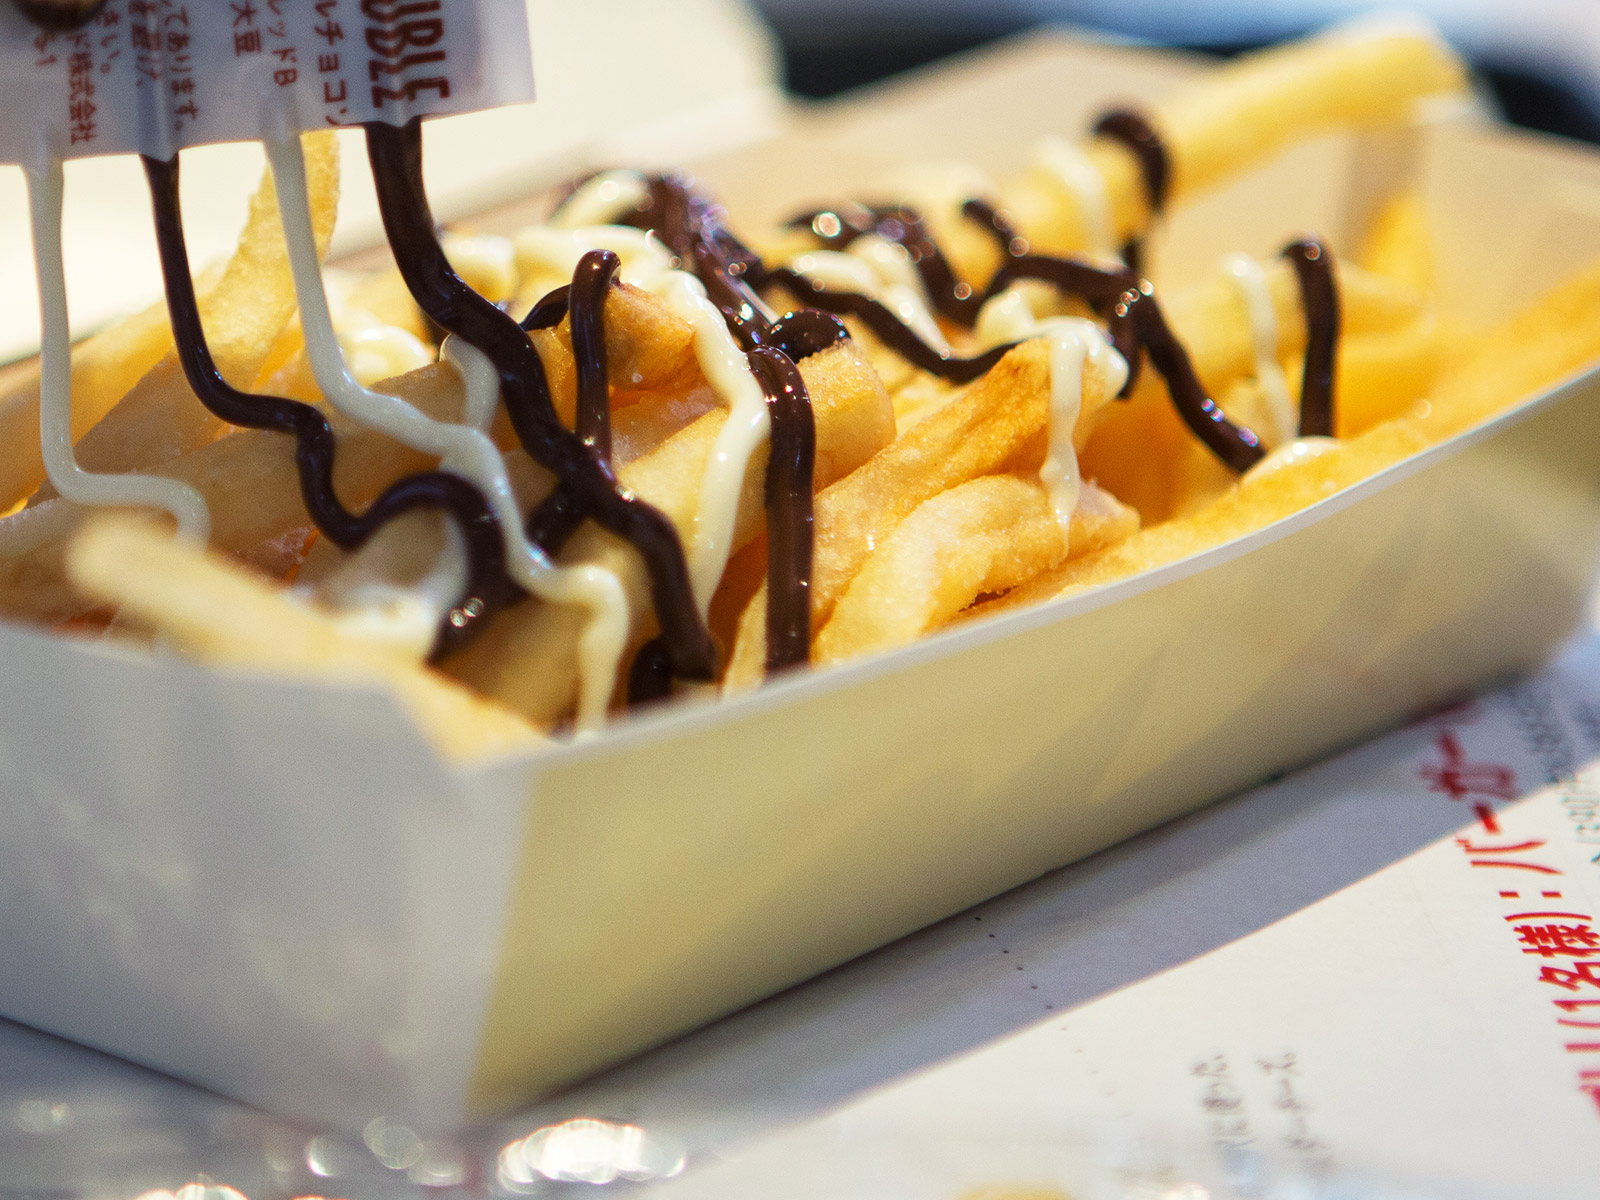 mcchoco fries